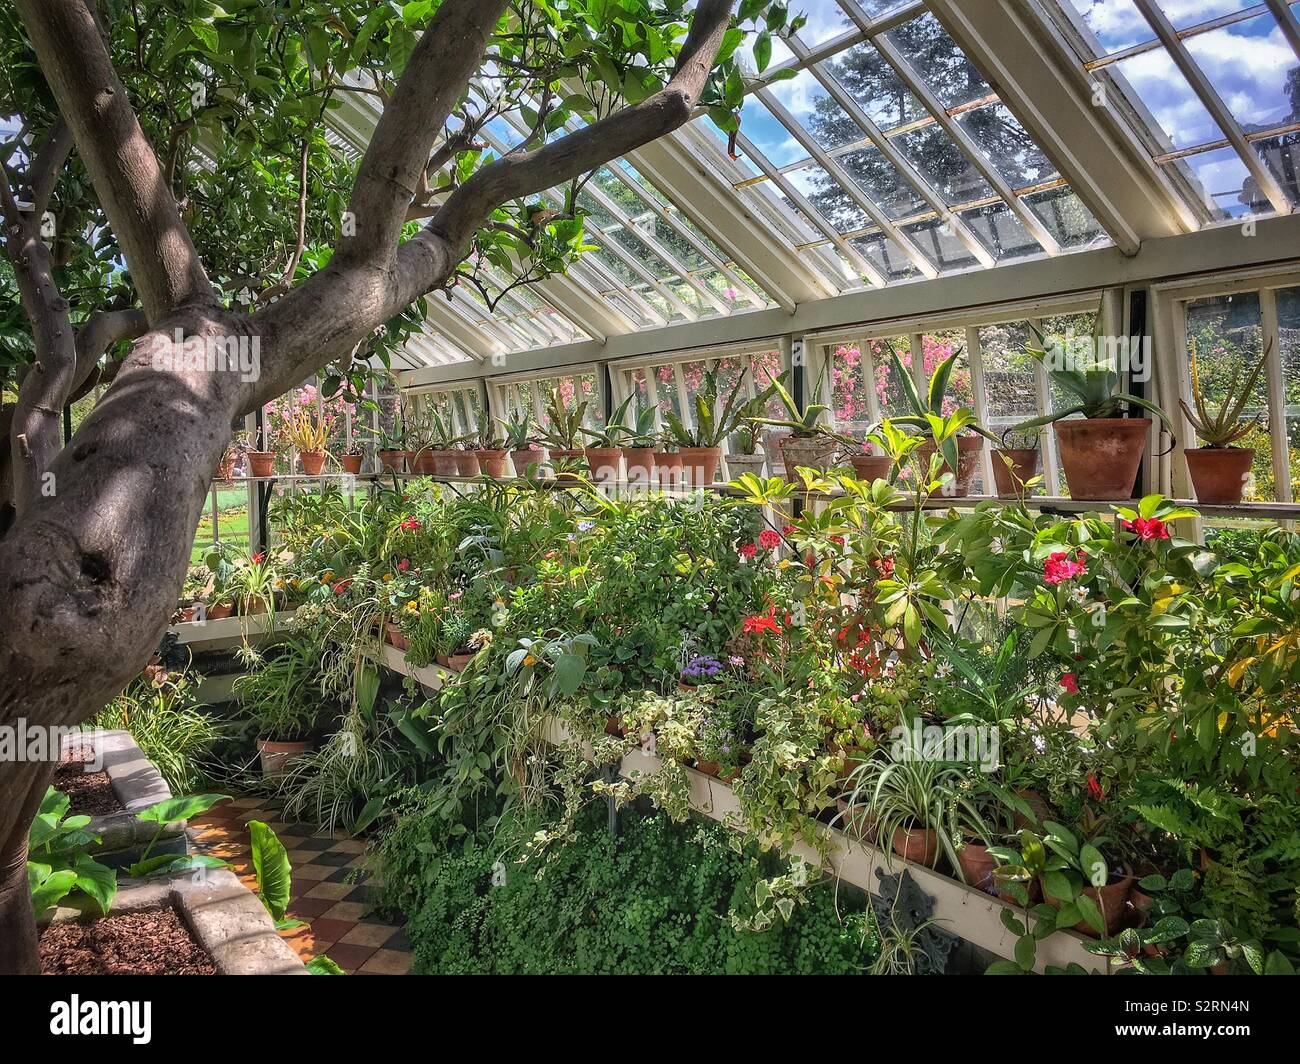 Interior of an English greenhouse crammed with pot plants. - Stock Image